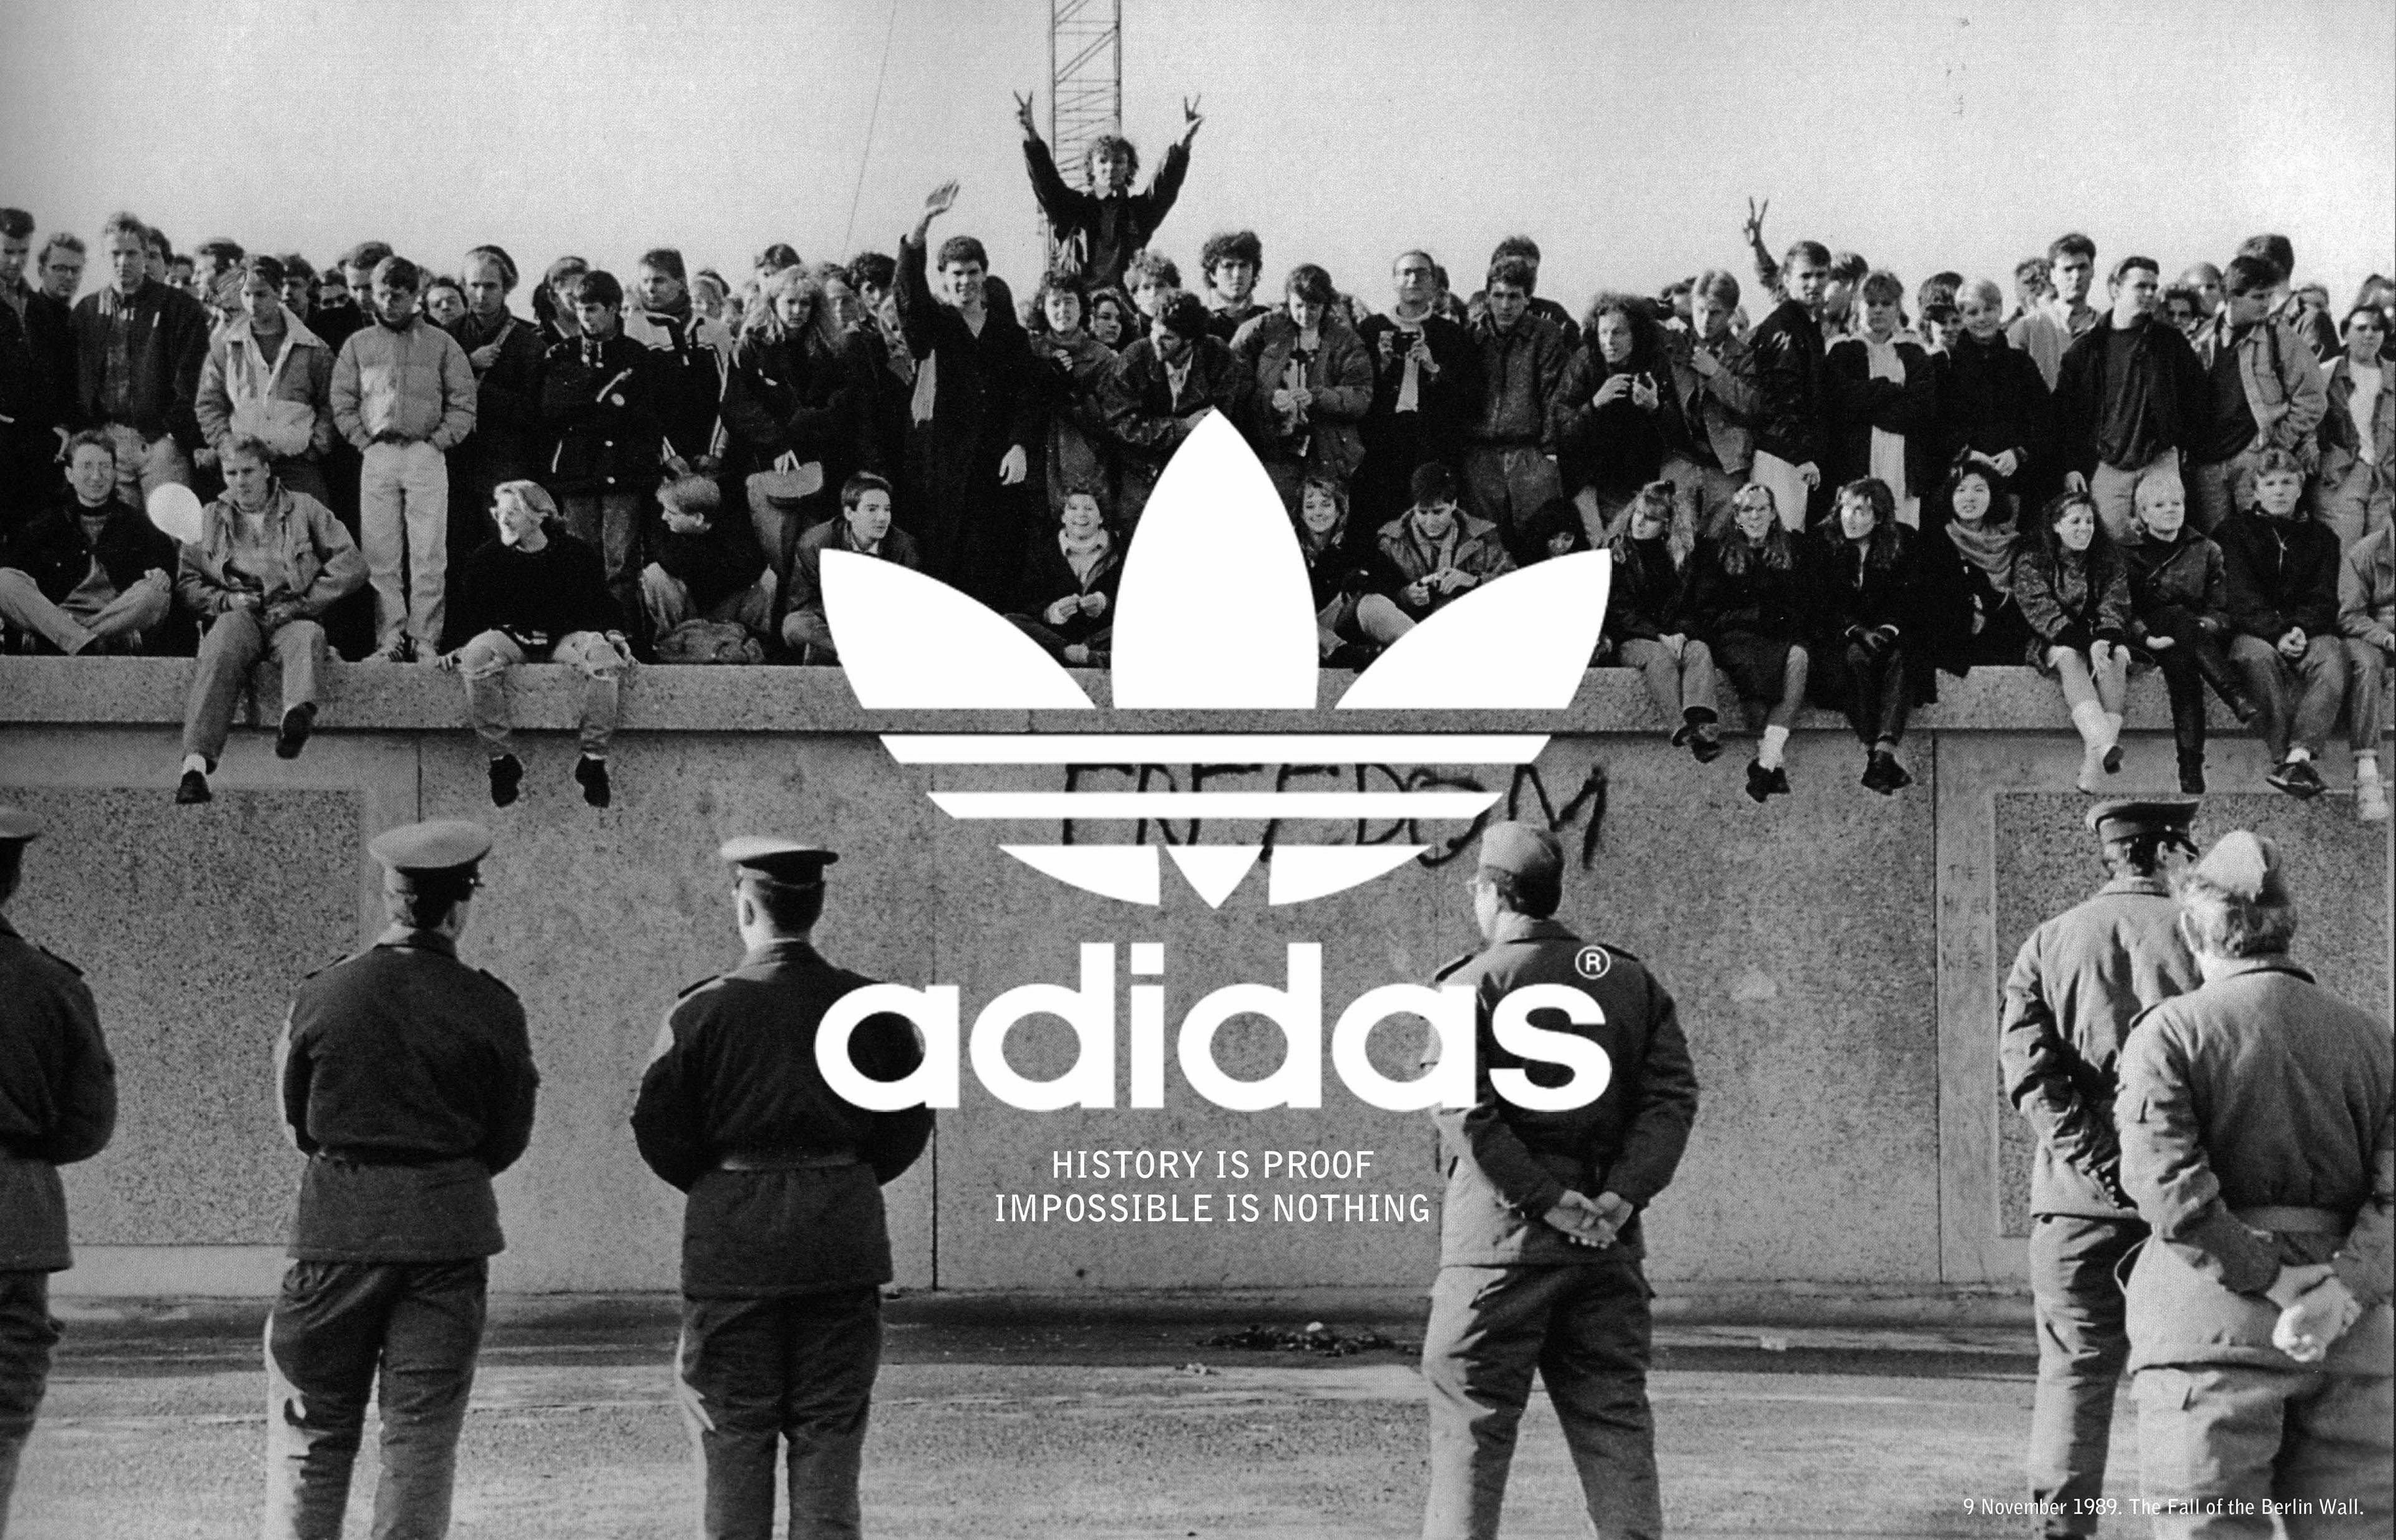 adidas history The creation of adidas originals launched a brand that became ingrained in both style and pop culture history, forever affecting the way we look at footwear adidas is constantly revamping the originals experience while playing on elements of their own history, creating clothing and shoes that raise the style bar in new and unexpected ways.